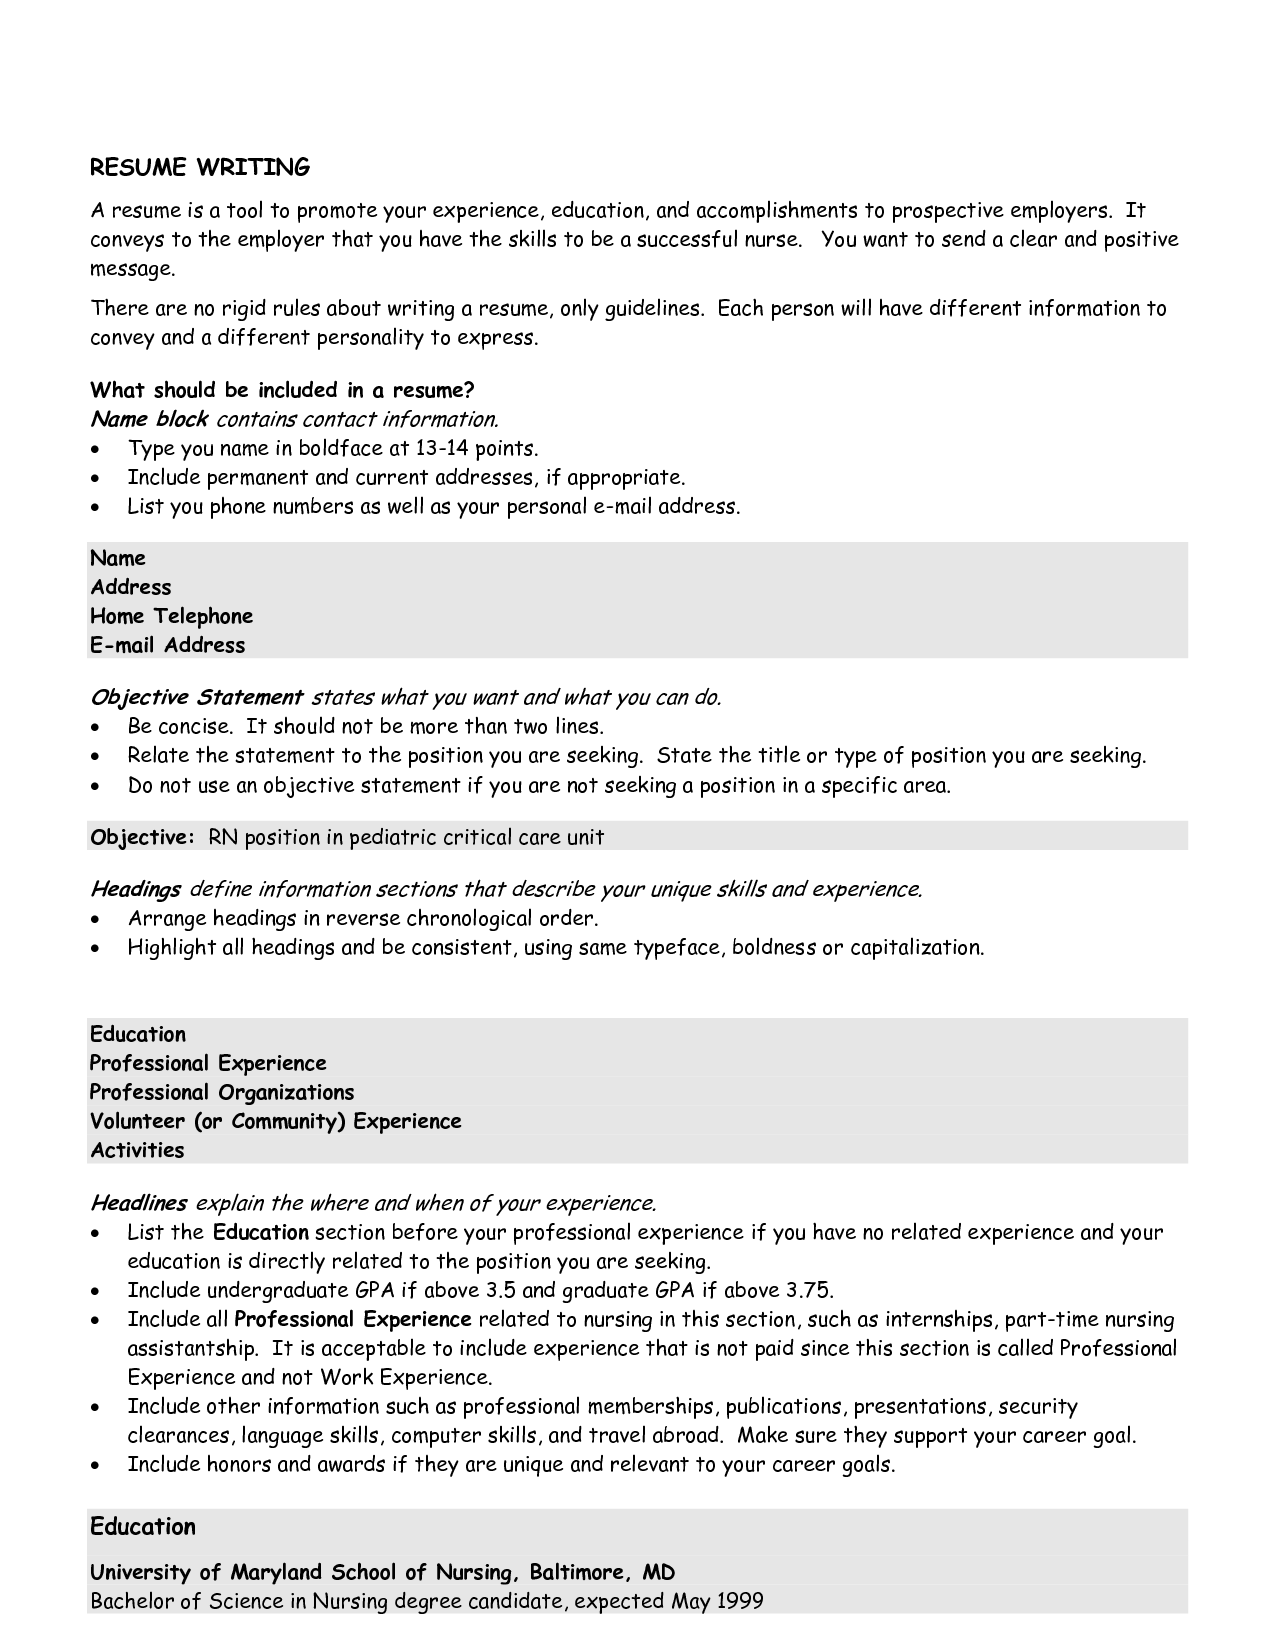 General Resume Objectives essayscope.Com